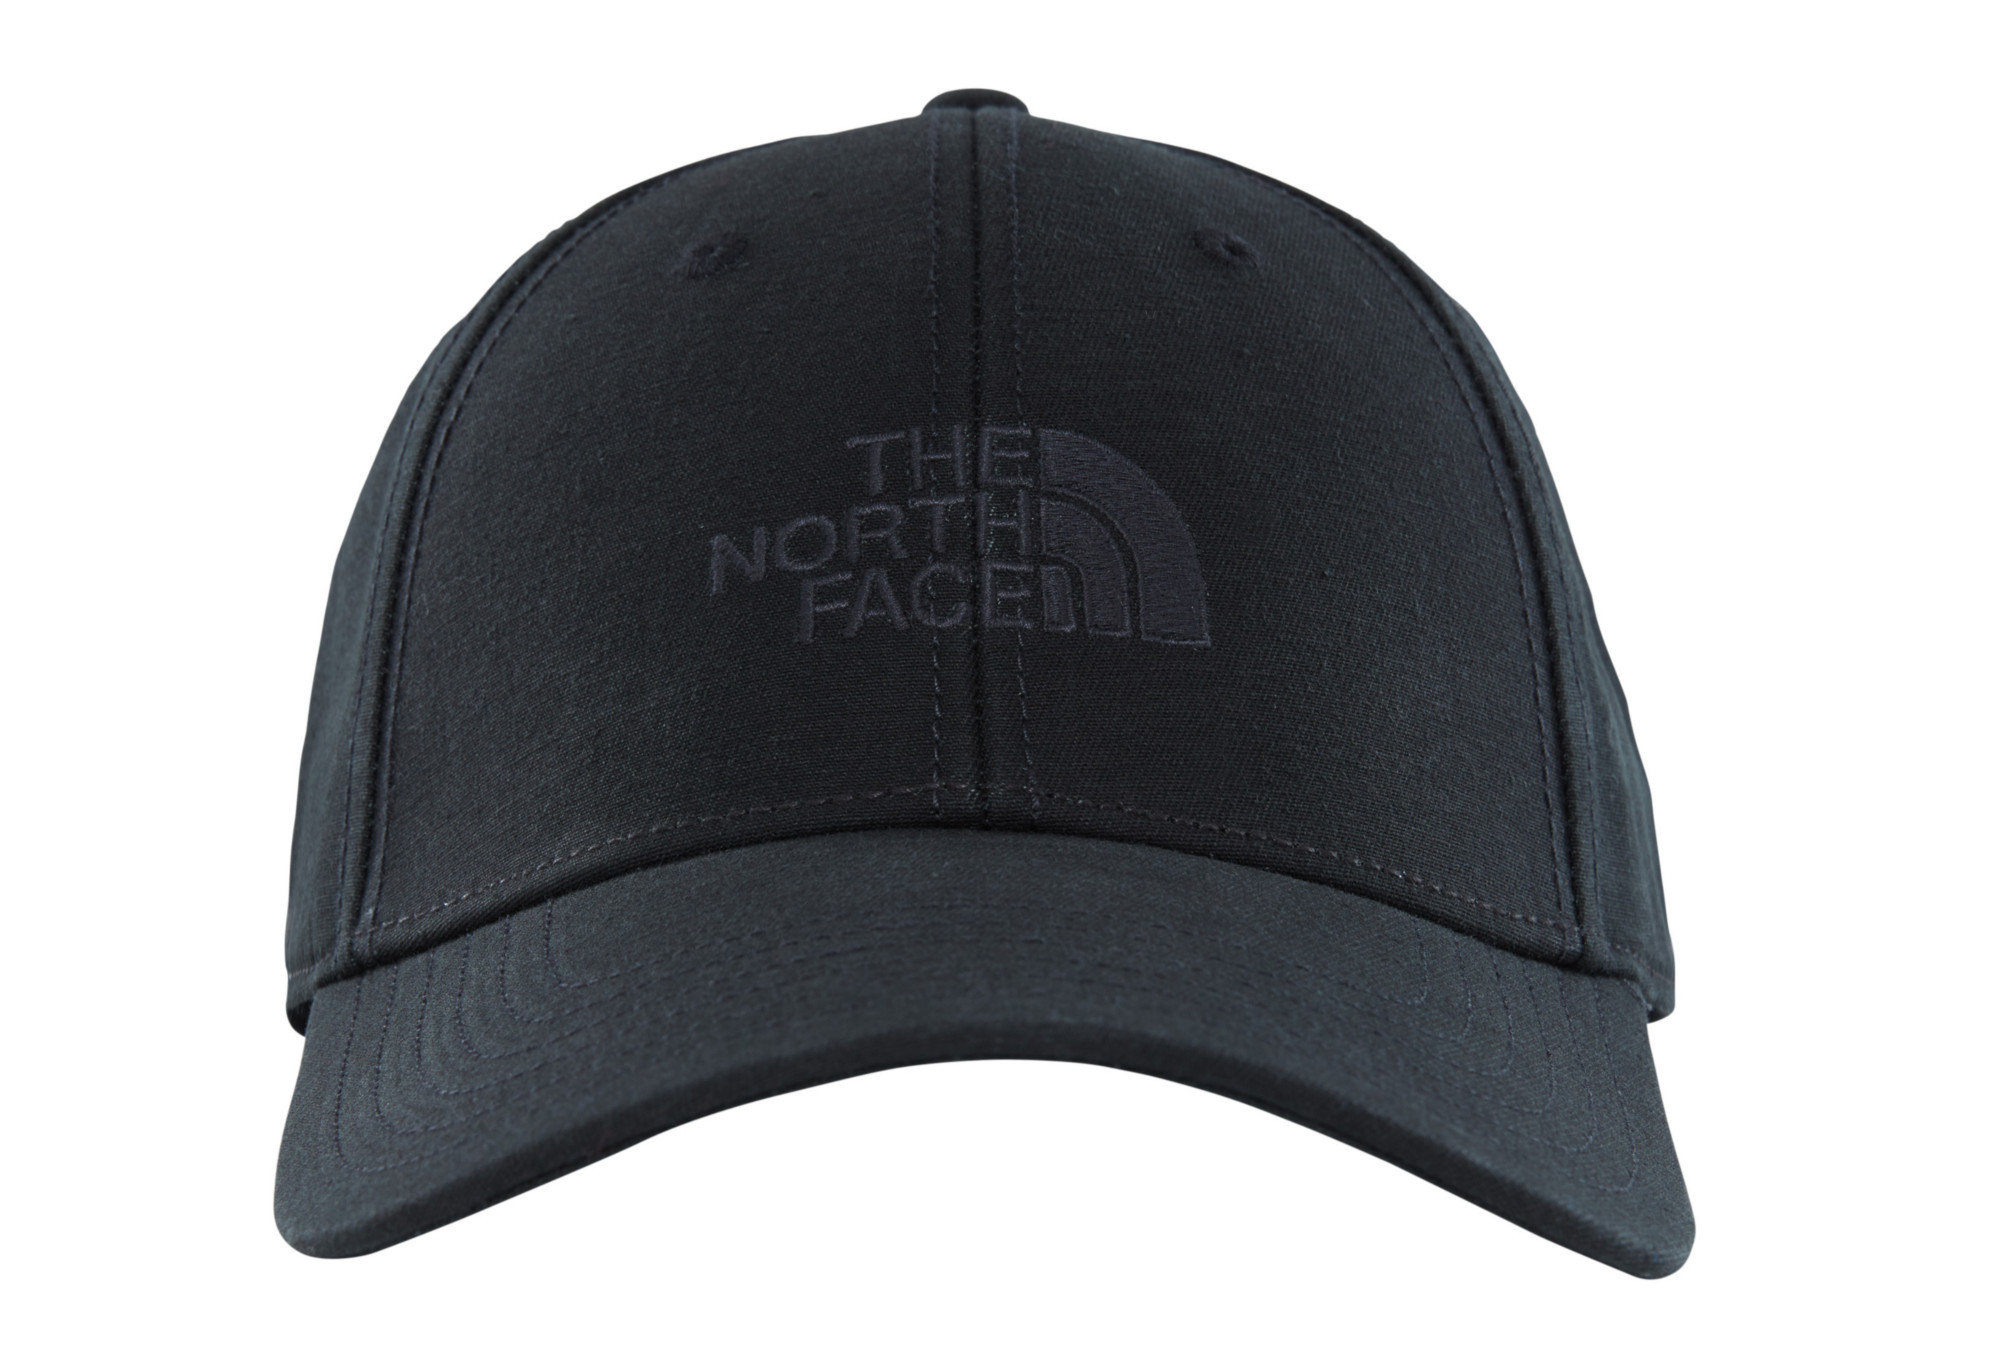 6b8f08d25b5 The North Face 66 Classic Cap Black